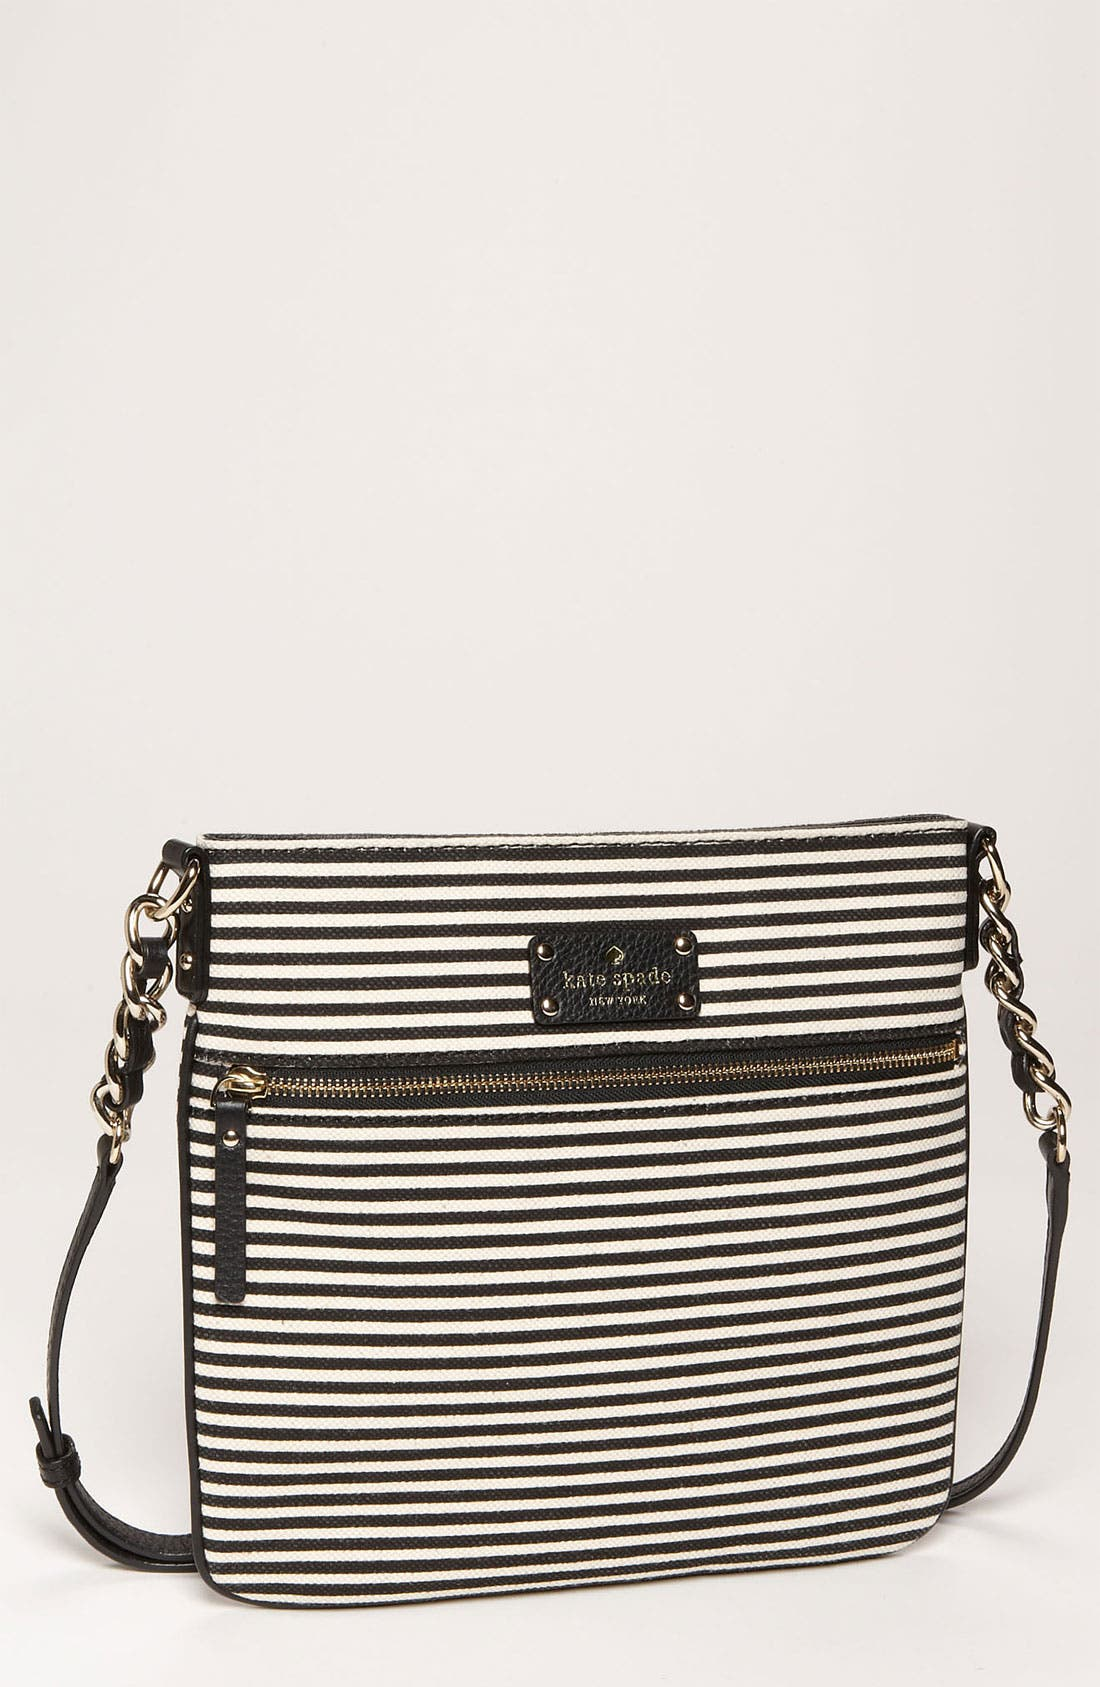 Alternate Image 1 Selected - kate spade new york 'ellen' crossbody bag